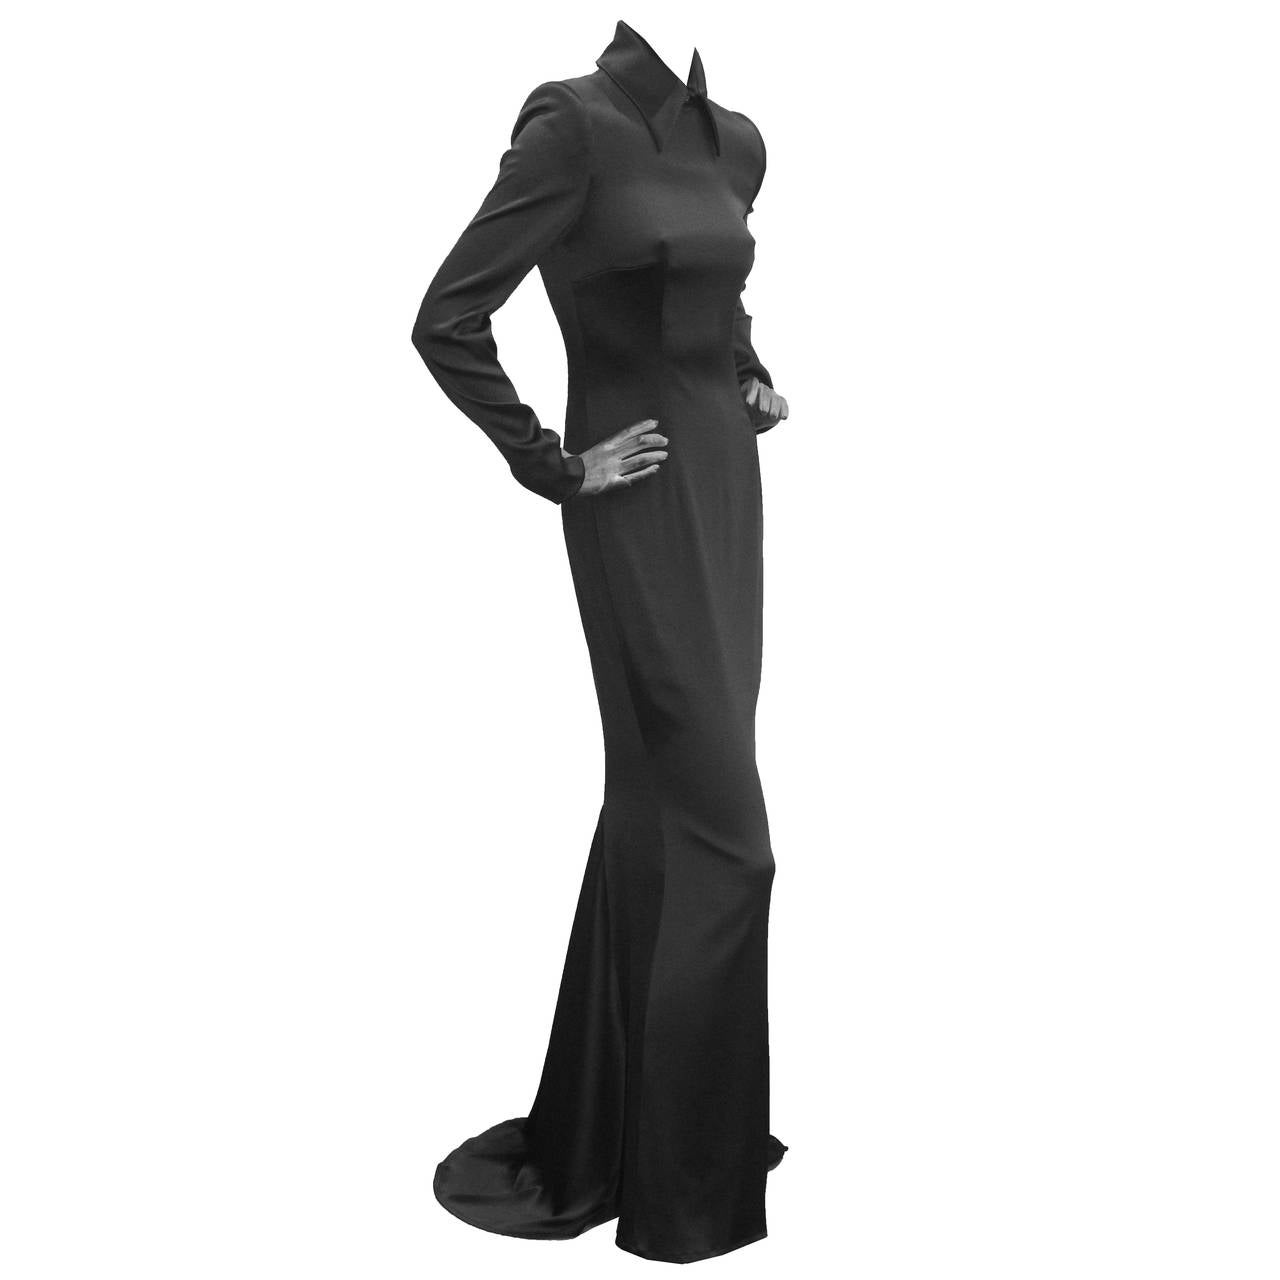 1990s Givenchy by Alexander McQueen Black Silk Evening Dress (Unworn) For Sale